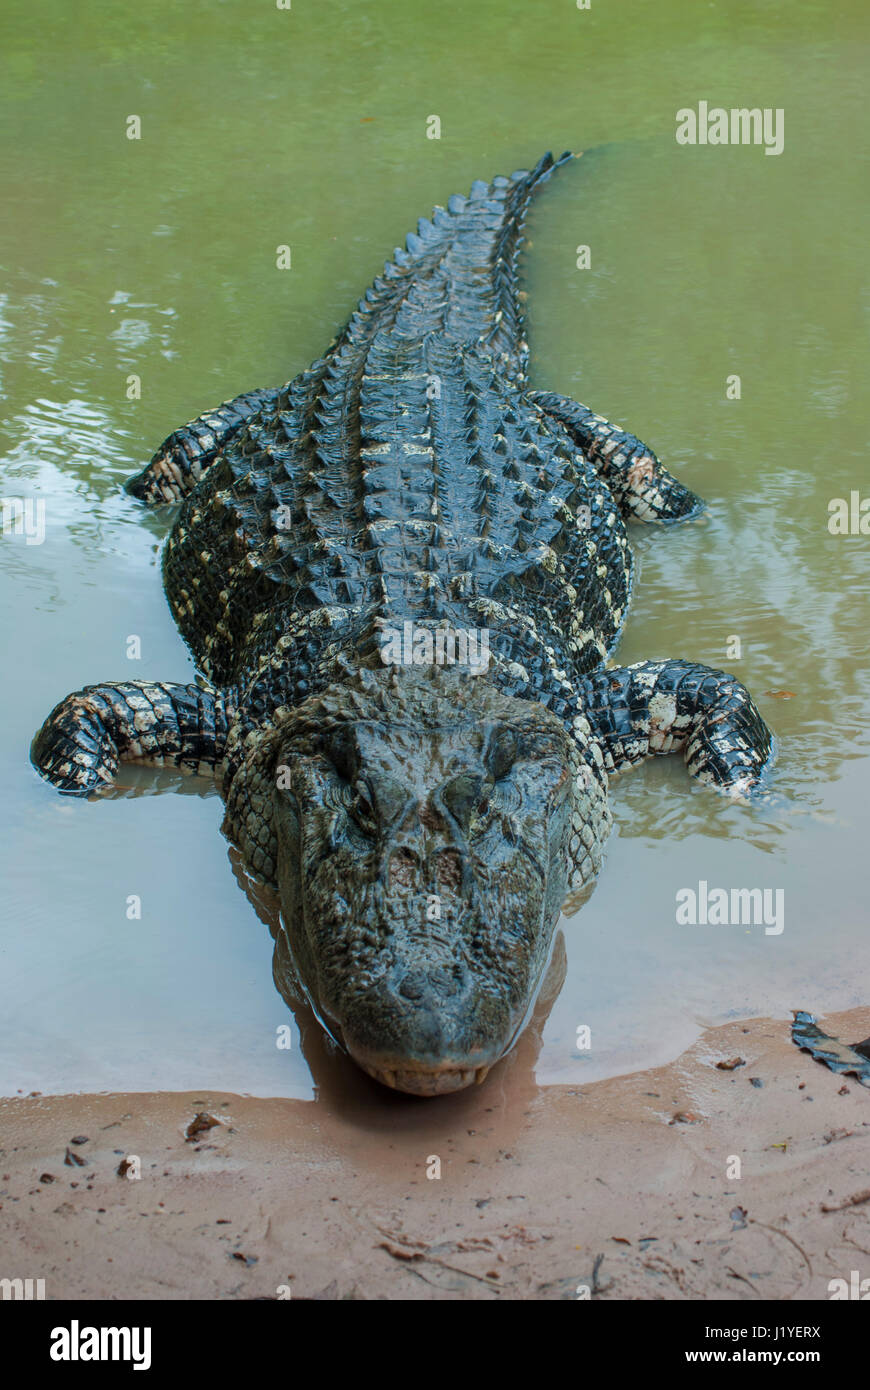 Black caiman Melanosuchus niger in the water at the river edge Stock Photo 138901950  Alamy